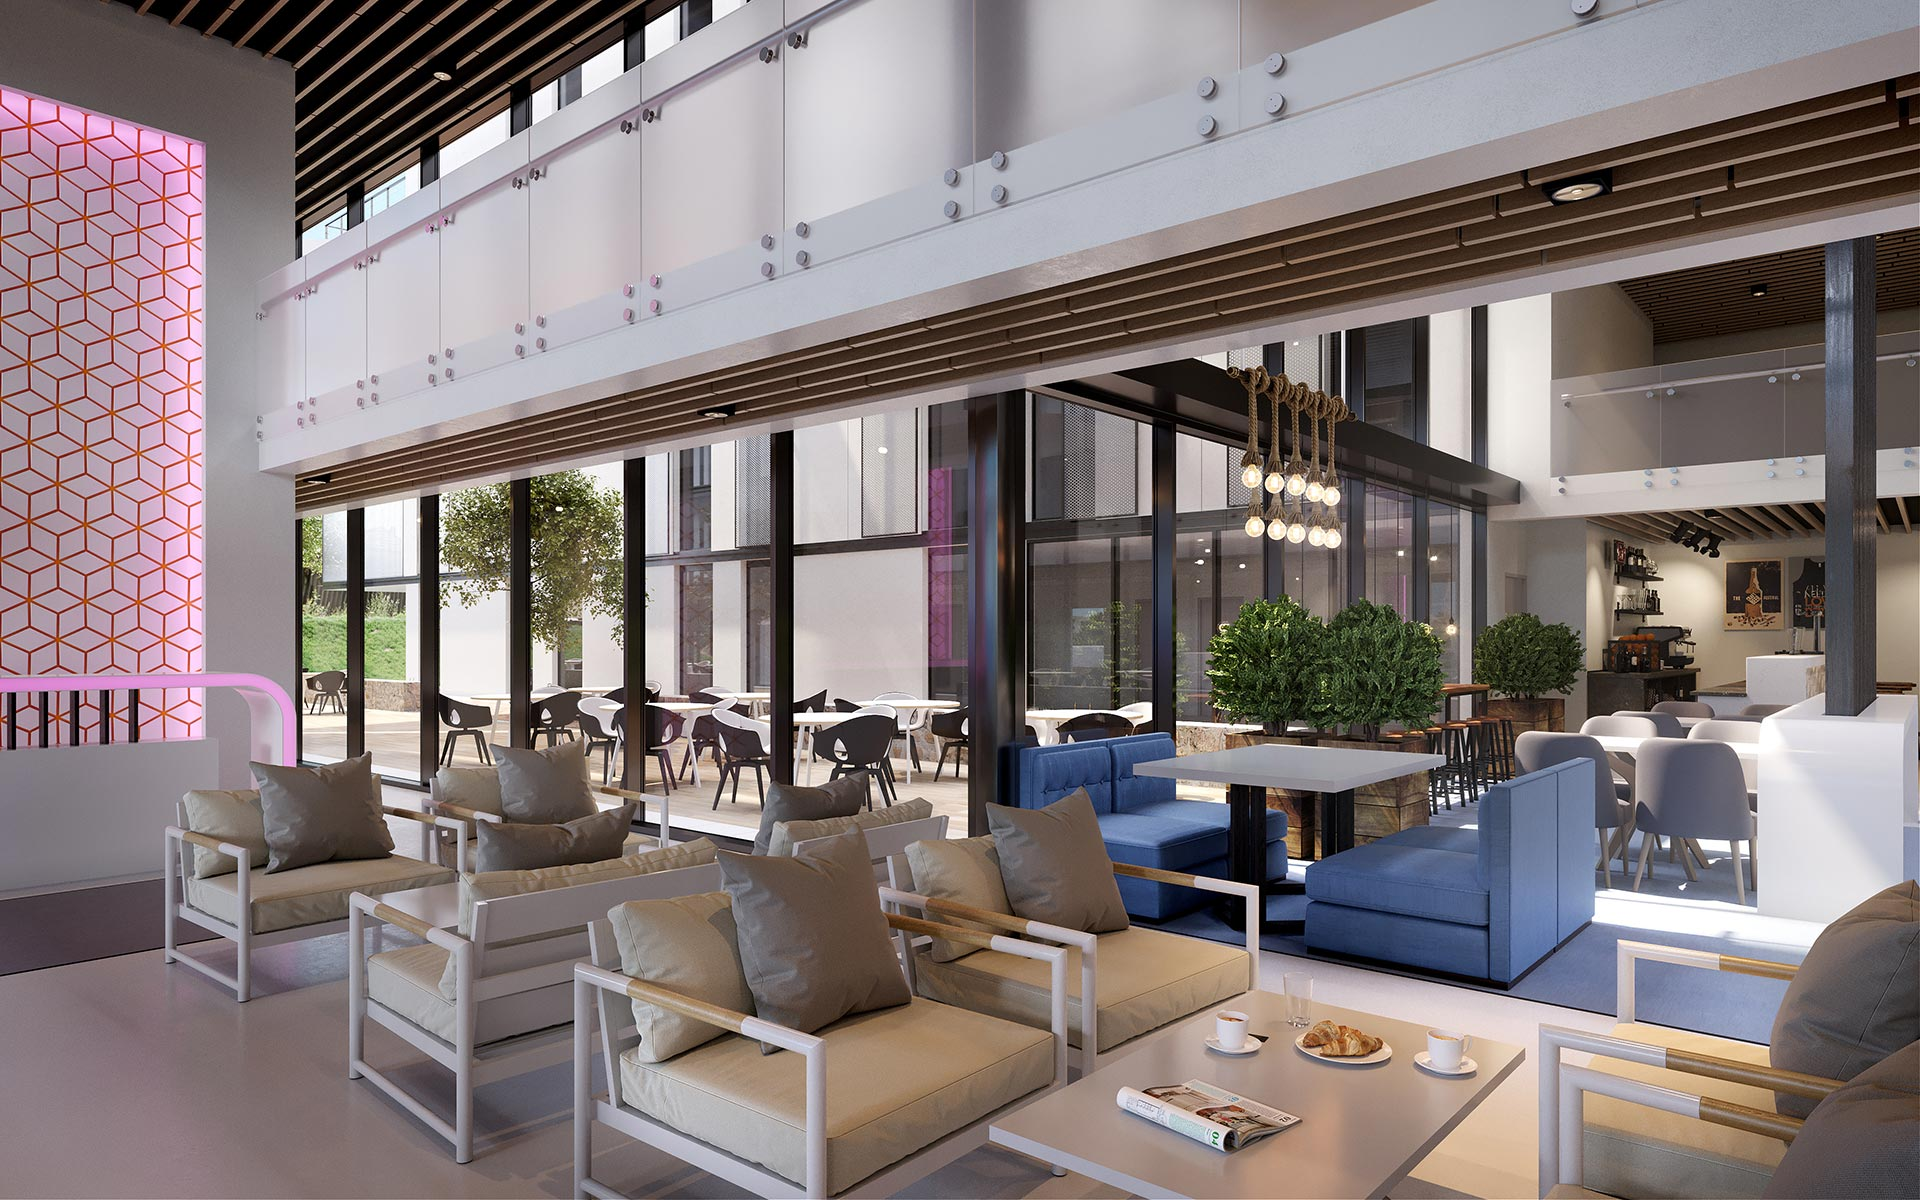 3D lobby perspective for a hotel development project